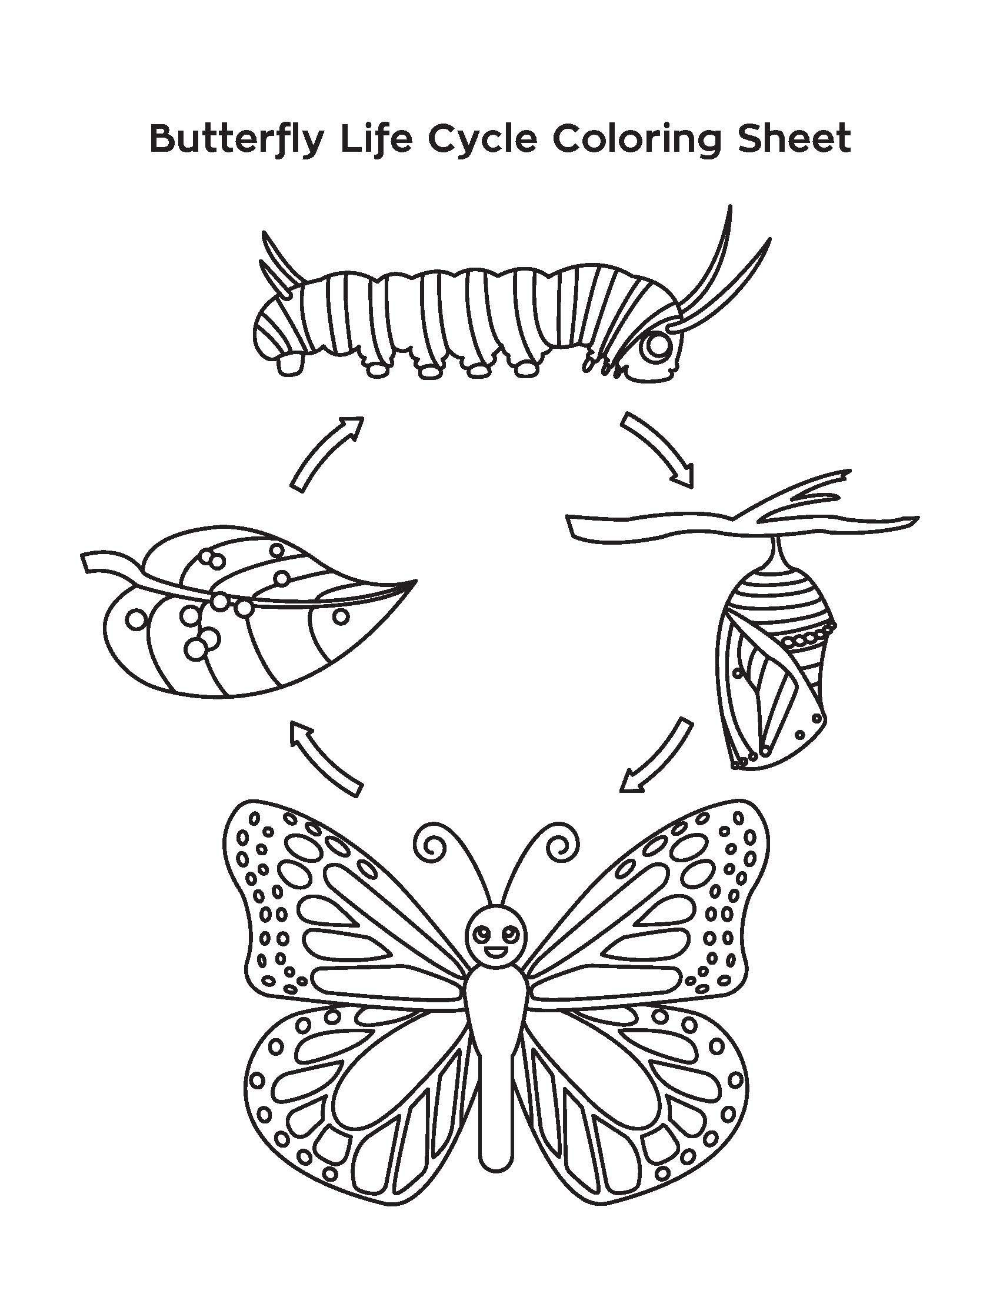 Life Cycle Of A Butterfly Google Search Butterfly Coloring Page Butterfly Life Cycle Butterfly Life Cycle Kindergarten